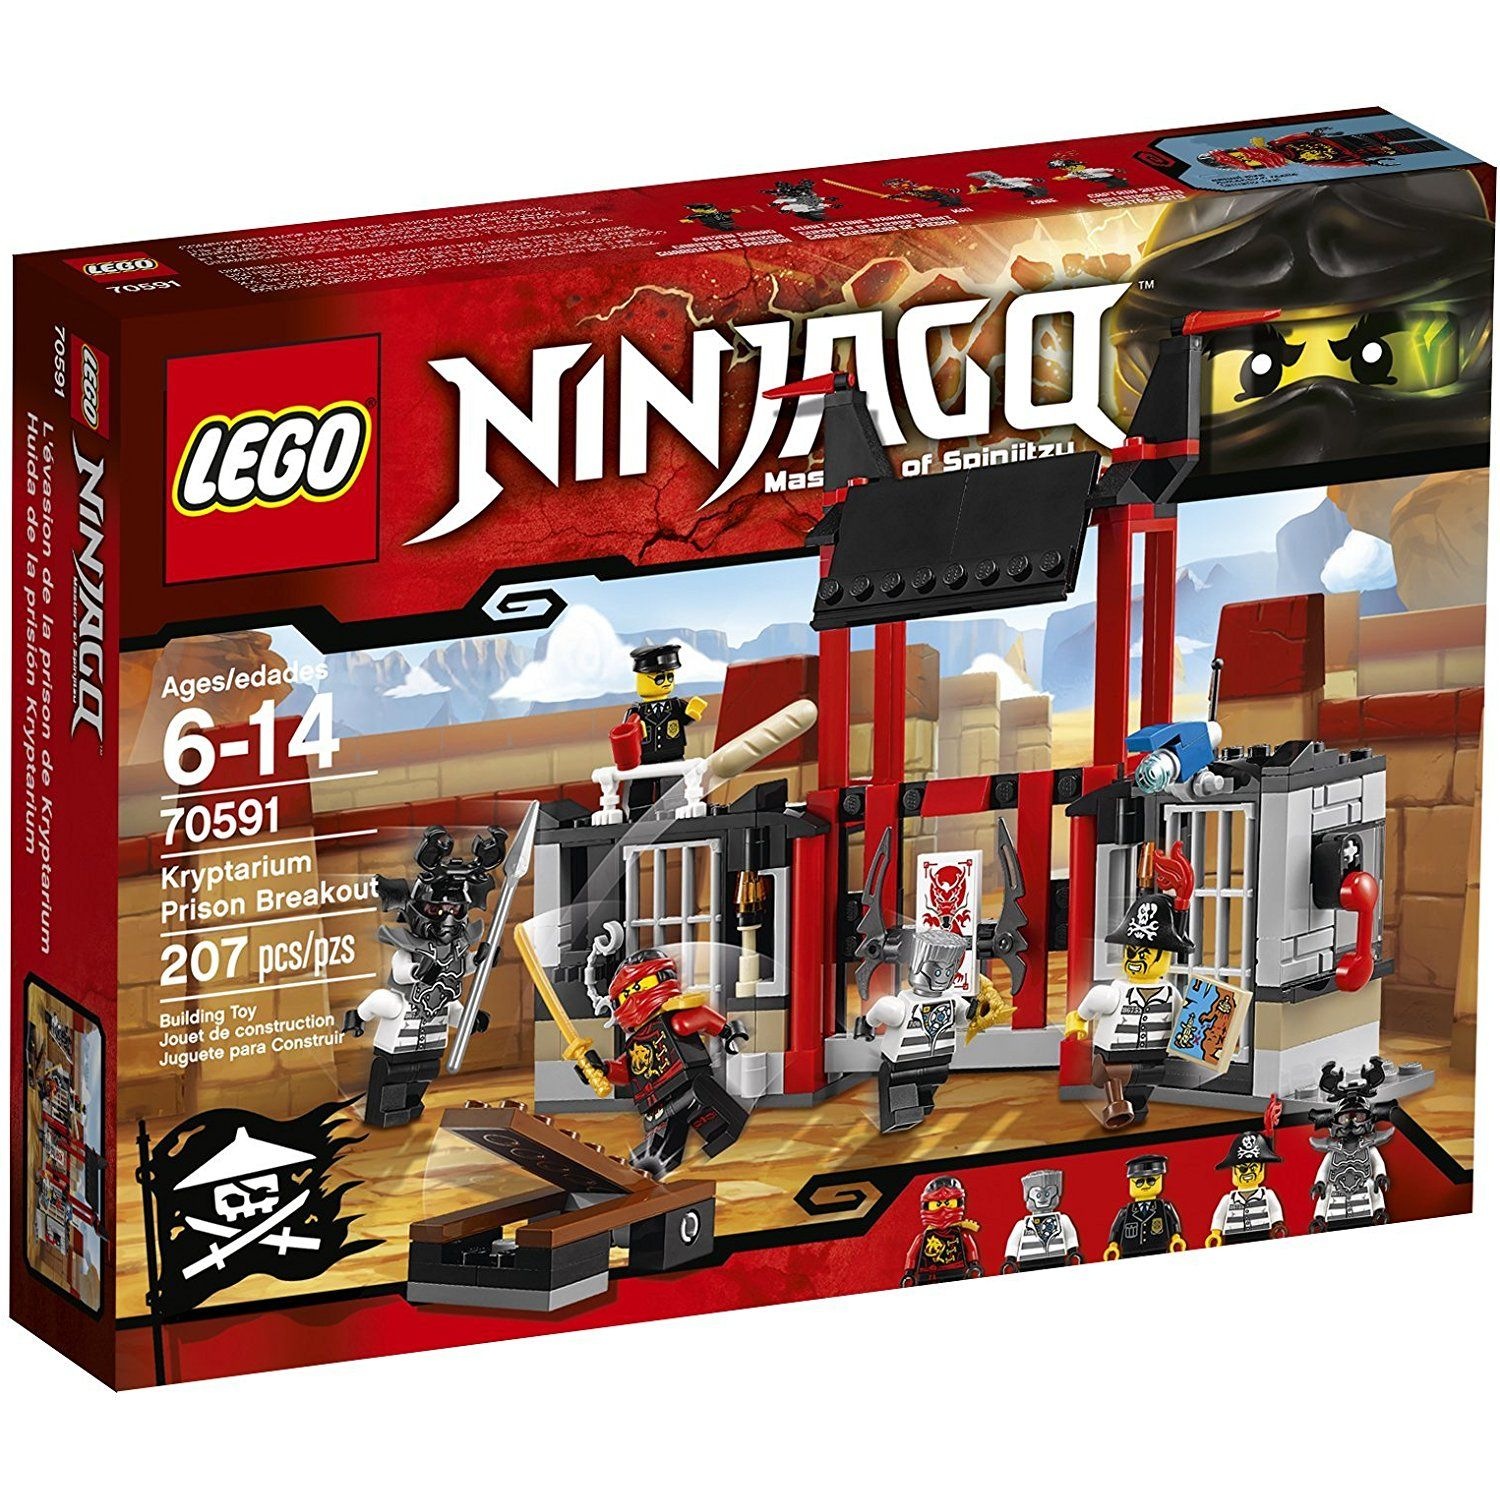 7b466d6e1c5c0 LEGO Ninjago 70591 Kryptarium Prison Breakout Building Kit (207 Piece) *  Visit the image link more details. (This is an affiliate link) #ToysGames